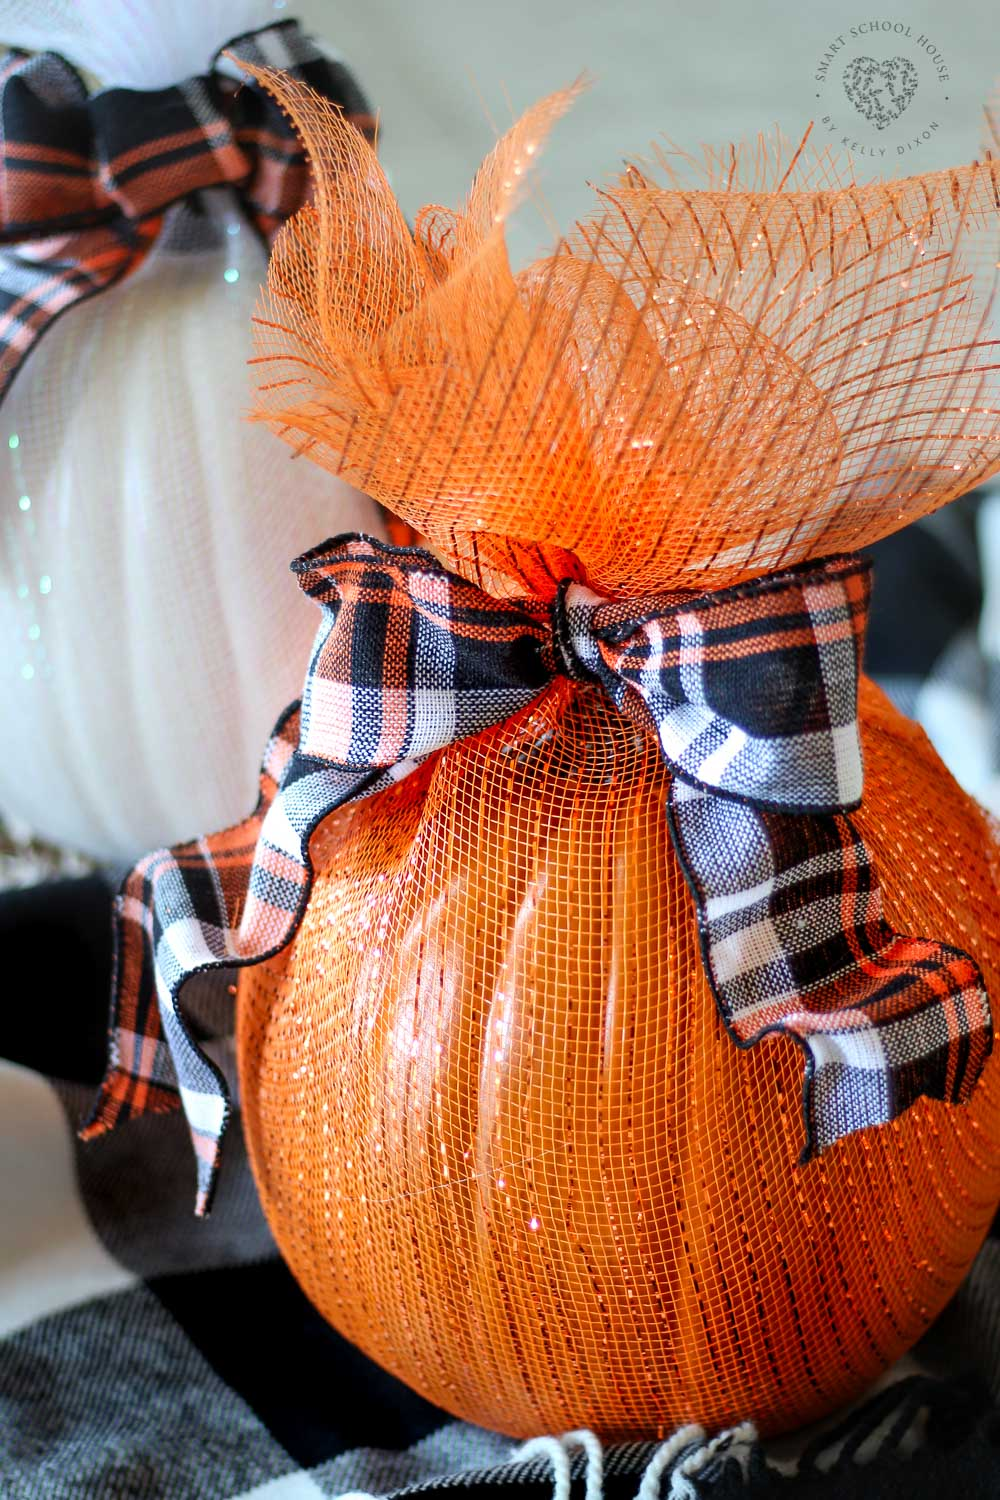 Pumpkins Wrapped in Mesh. A no-carve pumpkin decorating idea!I love how the pumpkins sparkle and look all dressed up without any carving. #pumpkindecor #decoratingwithpumpkins #DIYHalloweenDecorations #DecoMeshPumpkin